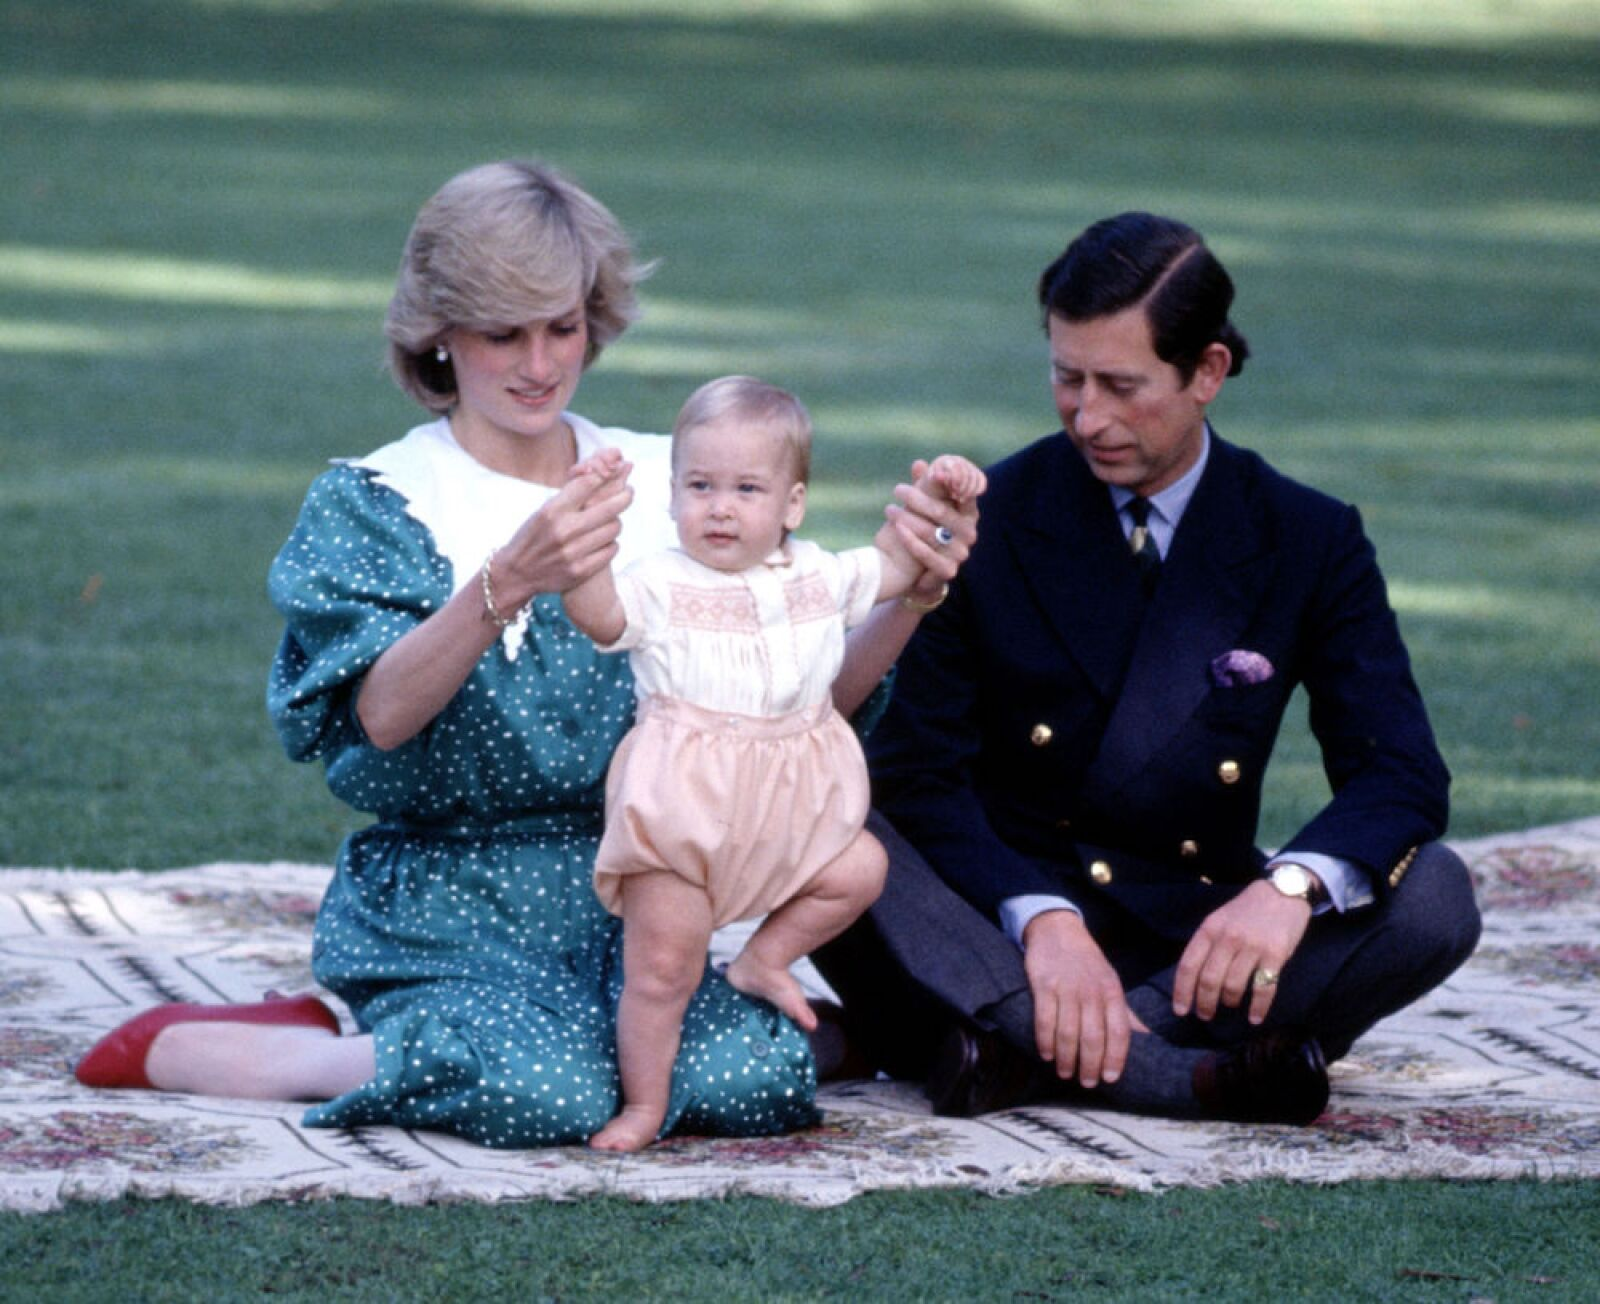 British royalty on a royal tour of New Zealand - Apr 1983